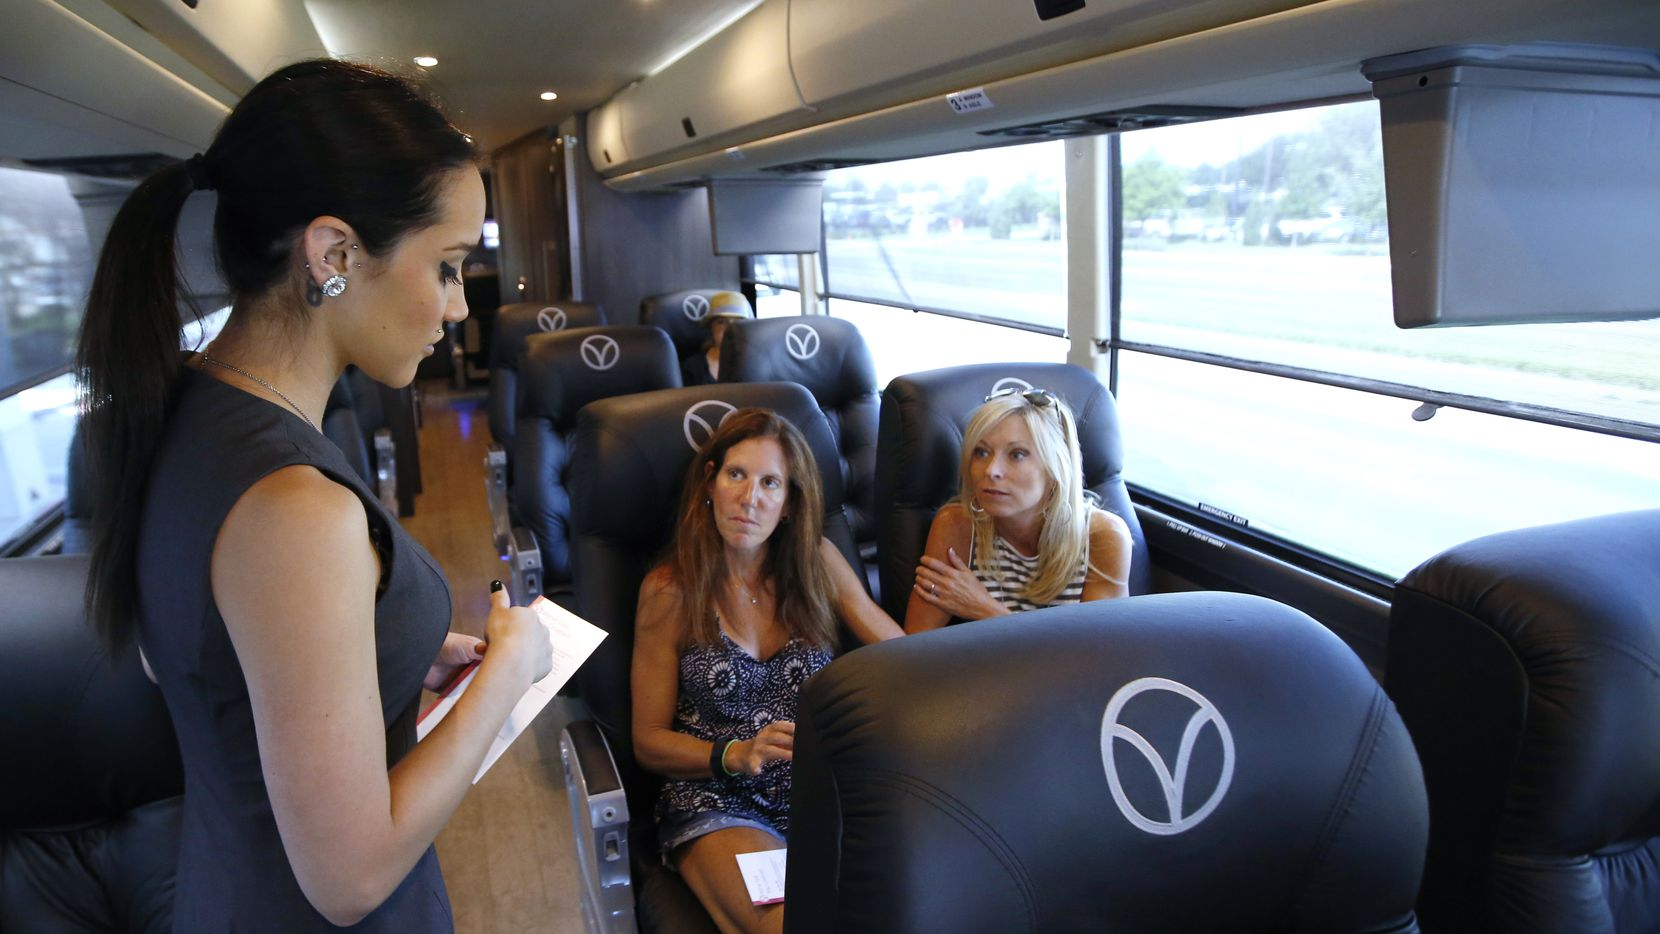 Sarah Moore, left, attendant for Vonlane, explains what Christy Isett, center, and Suzy Galanis can order before their bus departs Dallas en route to Austin on Friday, June 26, 2015. Passengers have the comfort of Wi-Fi and with an onboard attendant and gallery that serves complimentary snacks, meals, and refreshments. It also offers first class seating with ample legroom with complimentary noise canceling headsets. (David Woo/The Dallas Morning News)